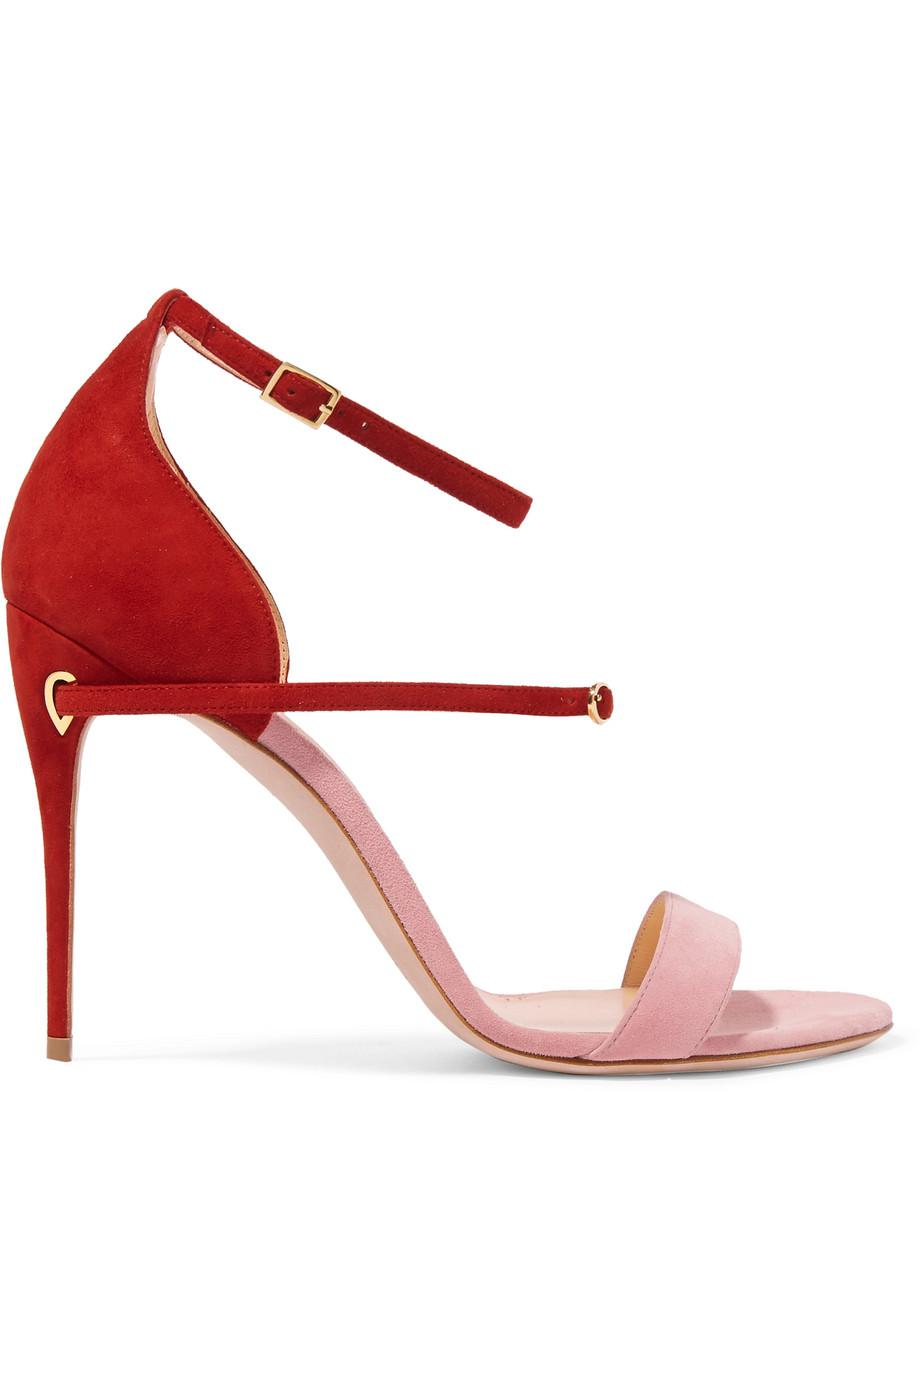 Roland Two-tone Suede Sandals - Pink Jennifer Chamandi New For Sale Purchase Sale Online Cheap Limited Edition Free Shipping Great Deals saIaXKr6